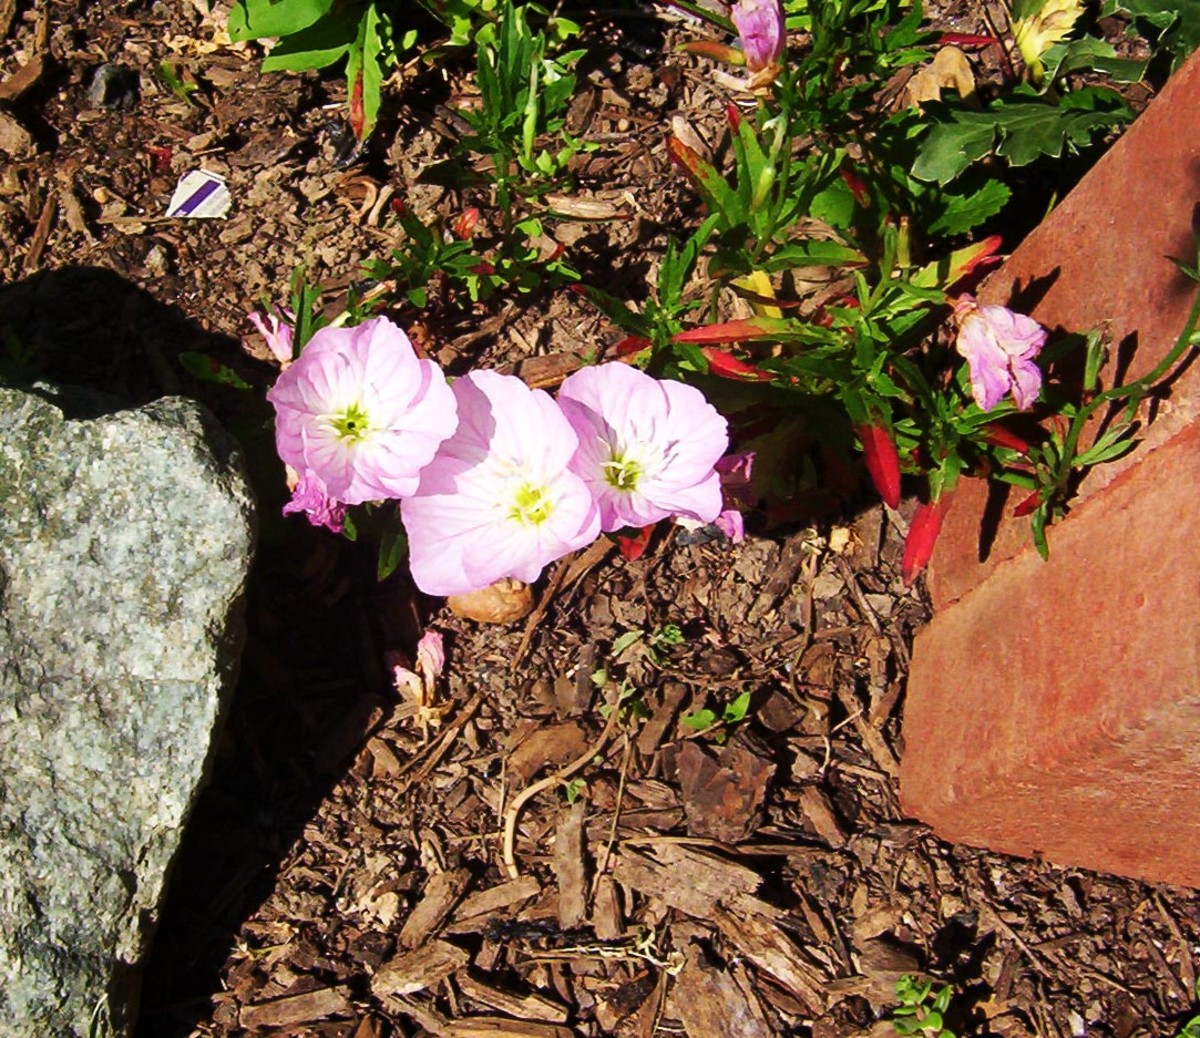 Mexican Evening Primrose (photo by Dolores Monet)